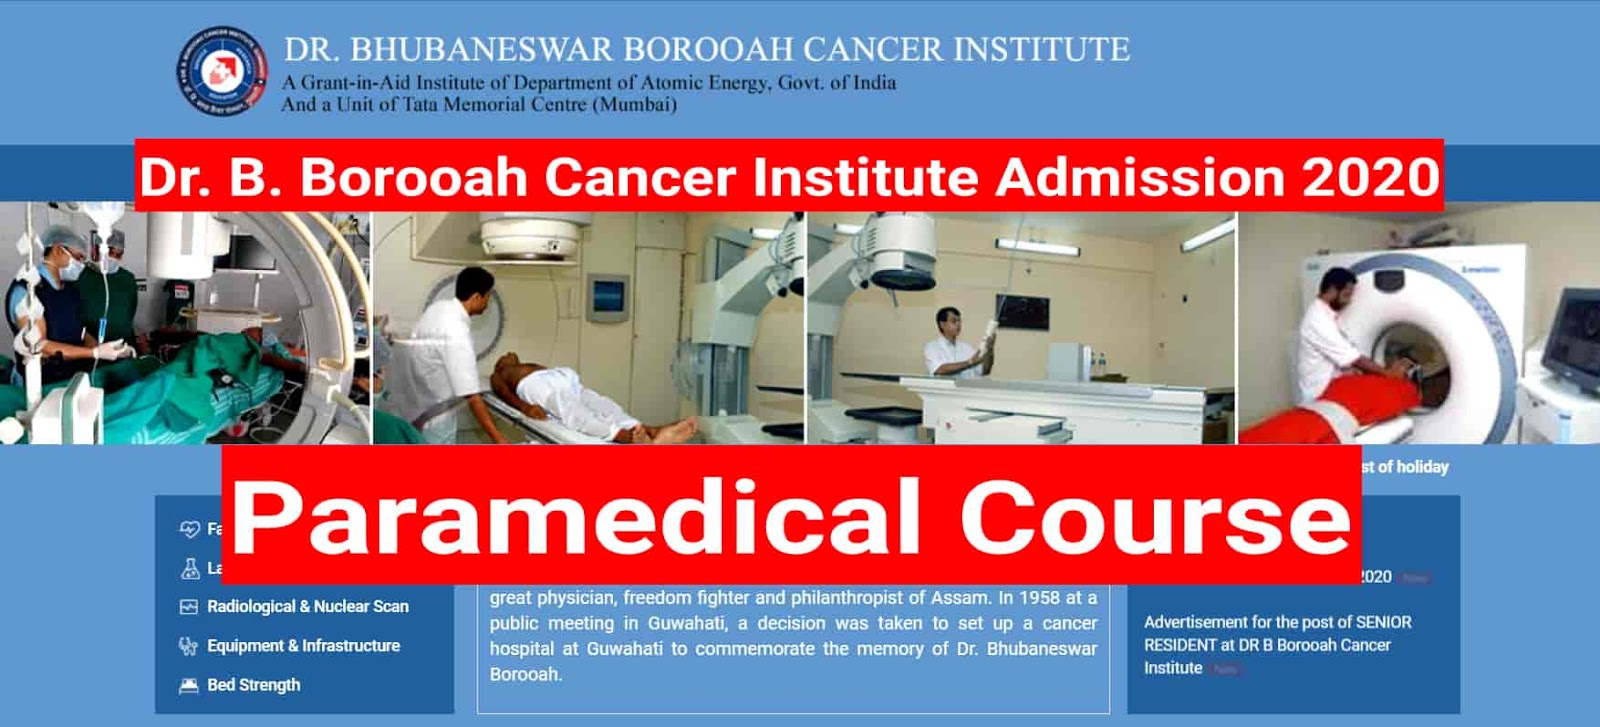 B Borooah Cancer Institute Paramedical Course Admission 2020